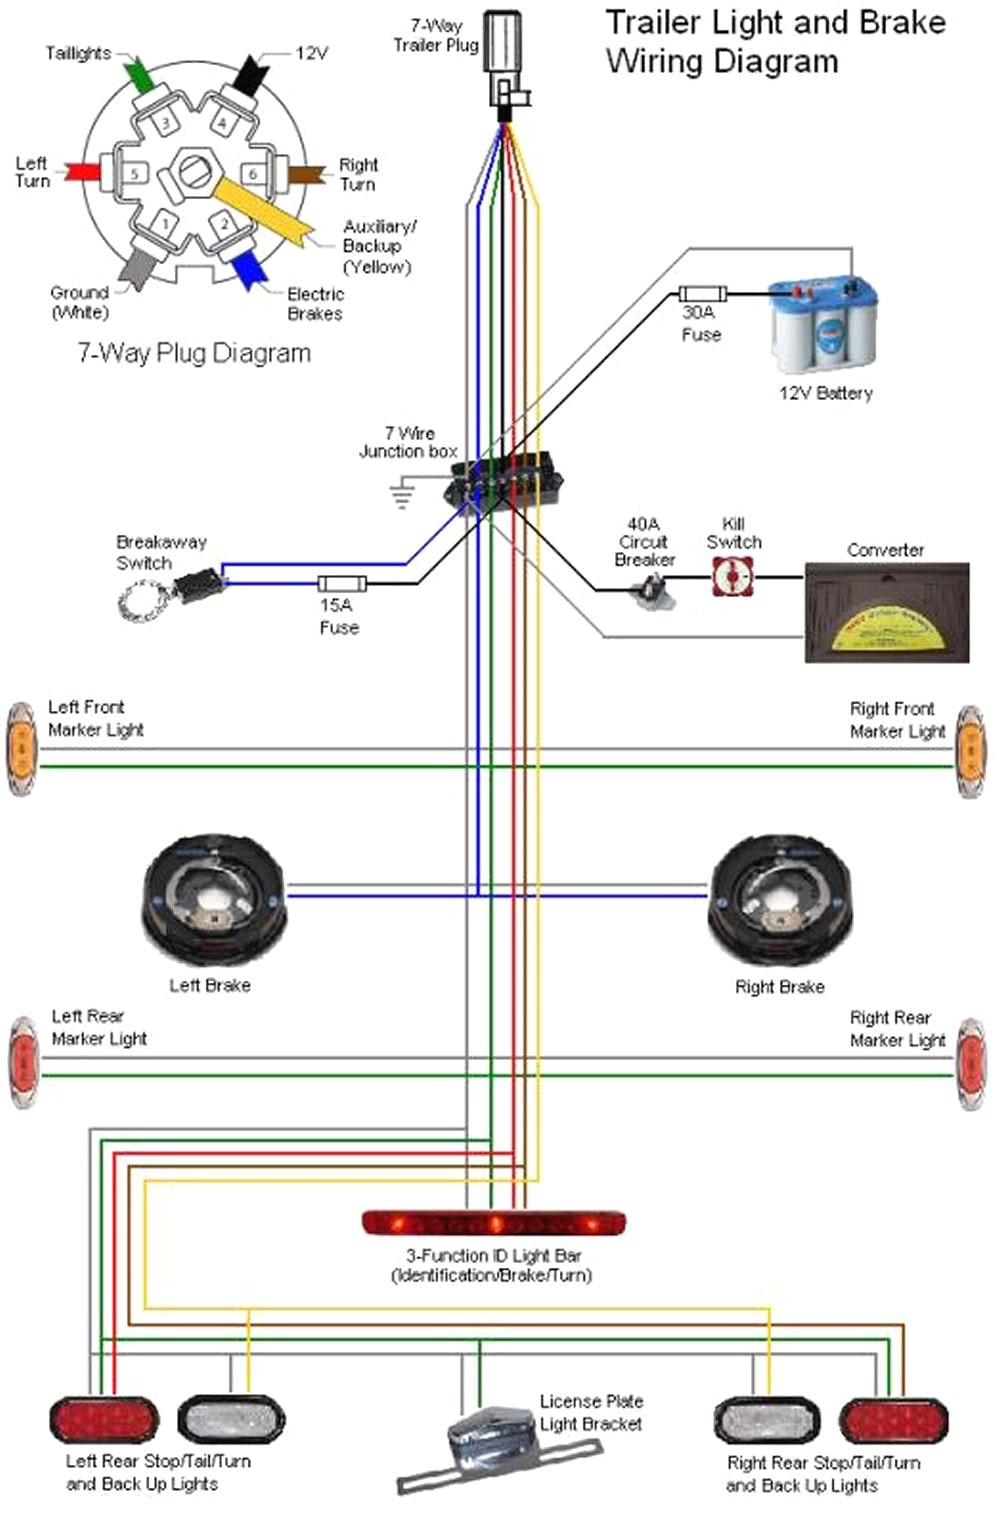 7 Prong Trailer Wiring Diagram Best 6 Pin Trailer Plug Wiring Diagram Fitfathers Me Lovely